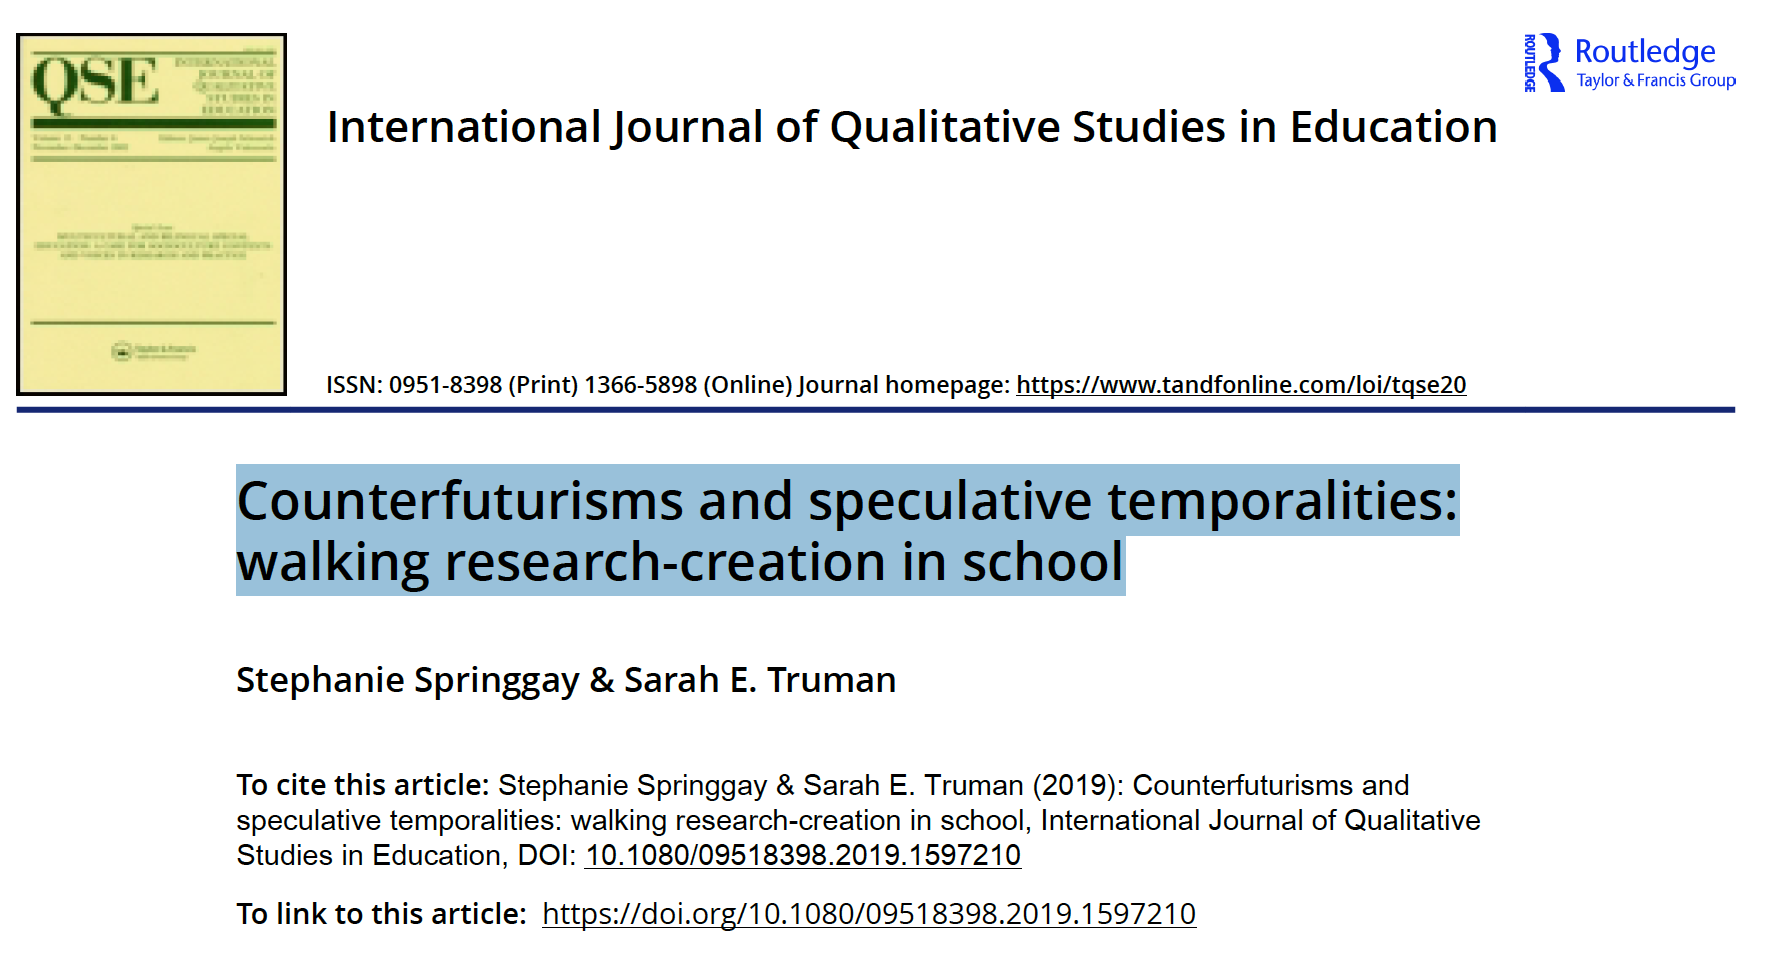 Counterfuturisms and speculative temporalities: walking research-creation in school